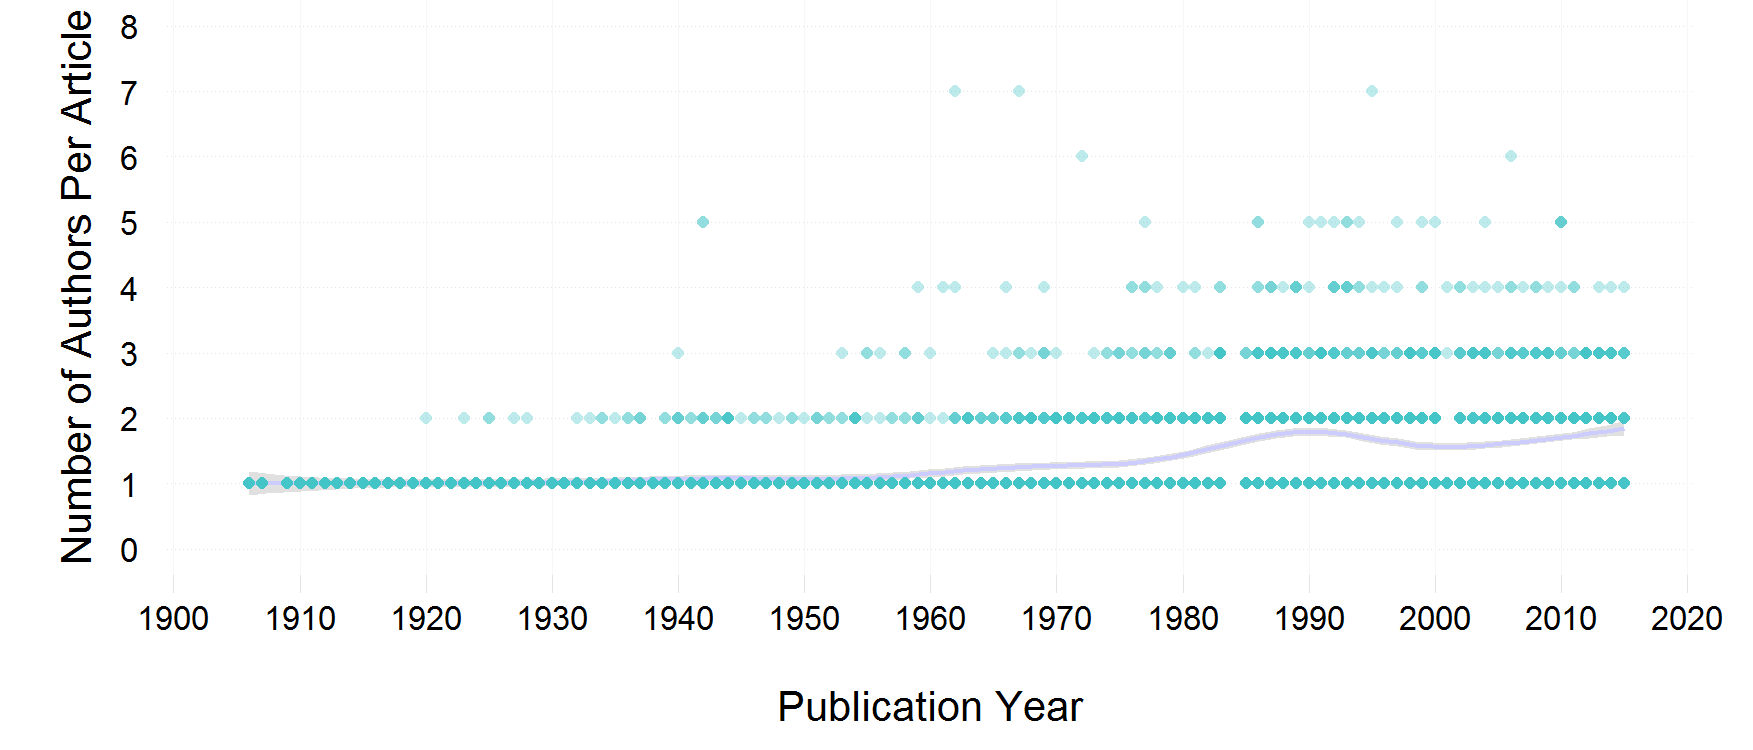 No. of authors over time